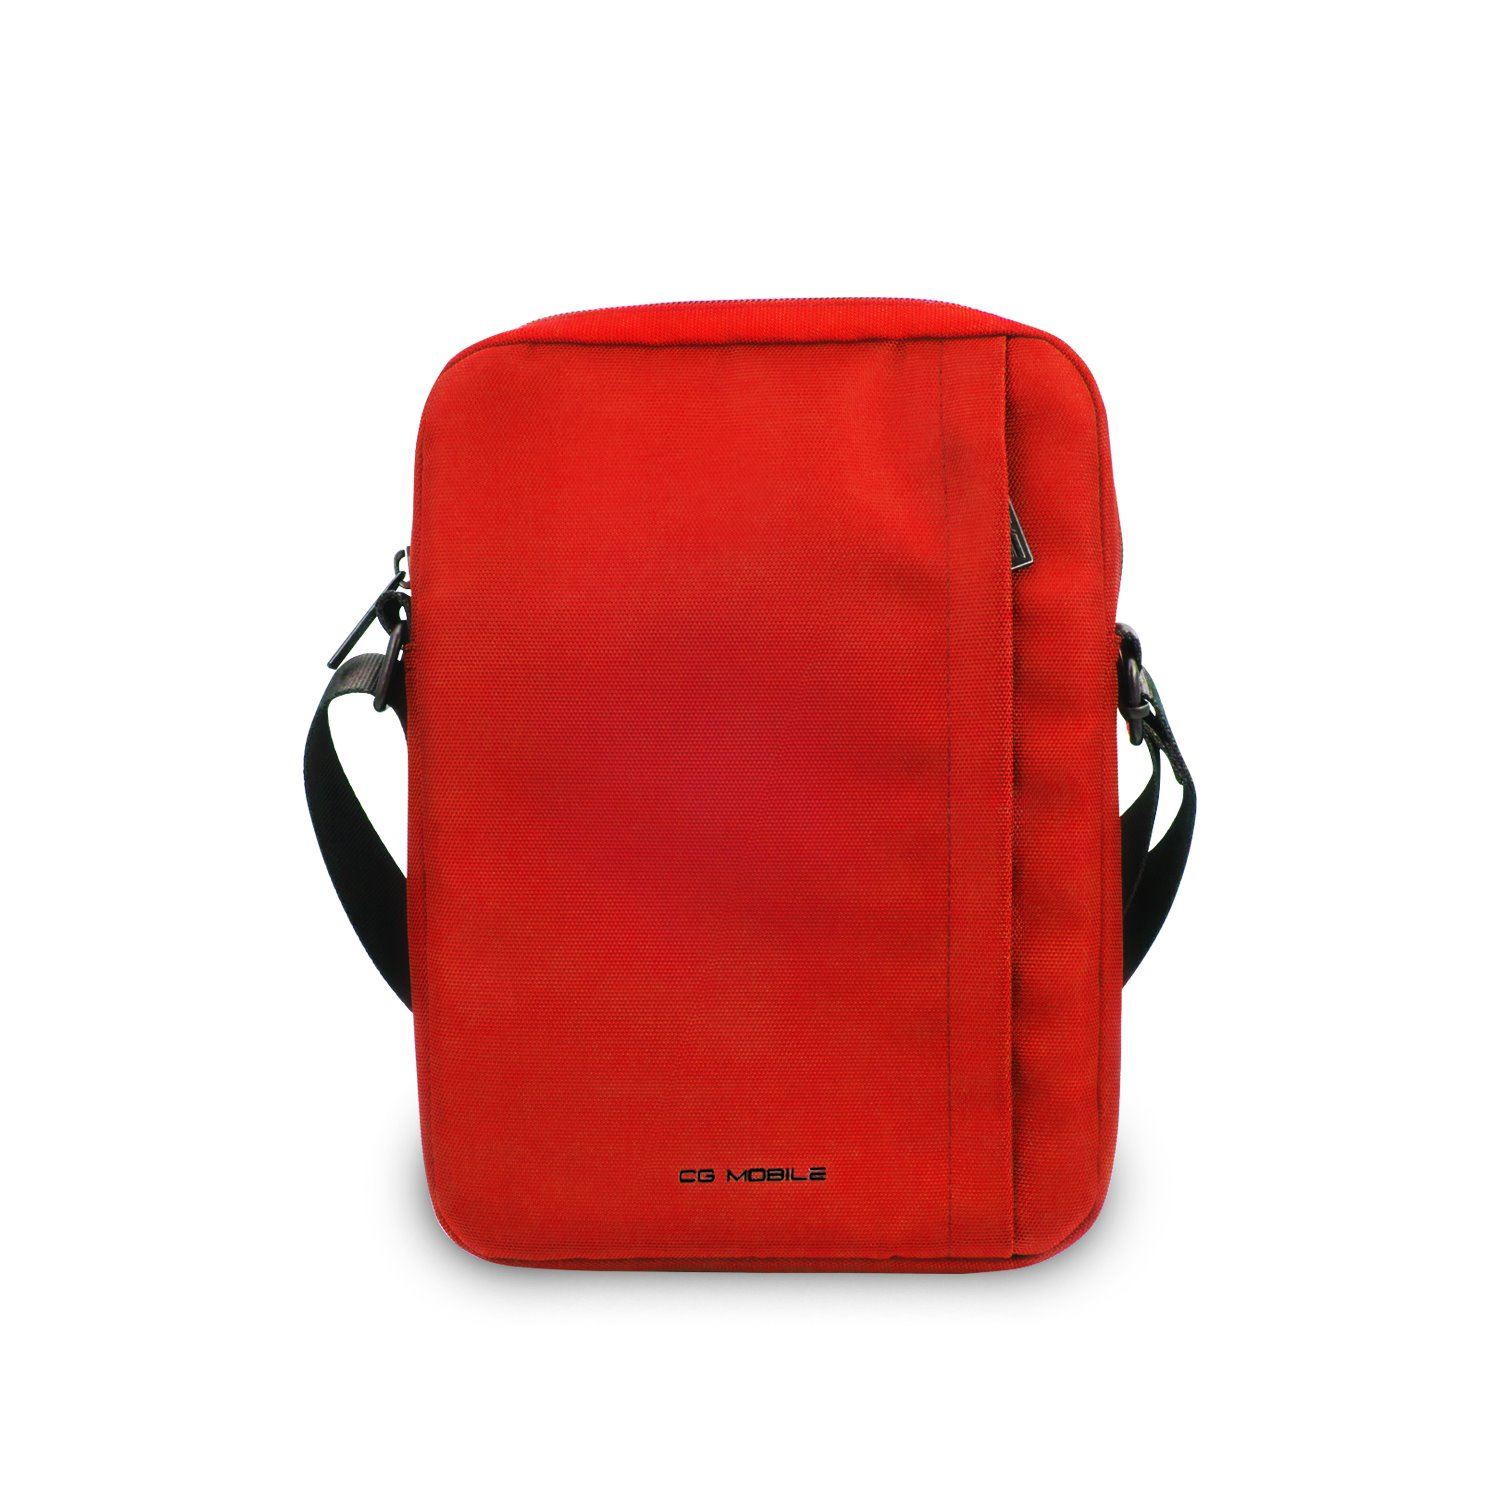 "FEURSH8RE Ferrari Urban Collection Tablet Bag 8"" Red 3700740394946"